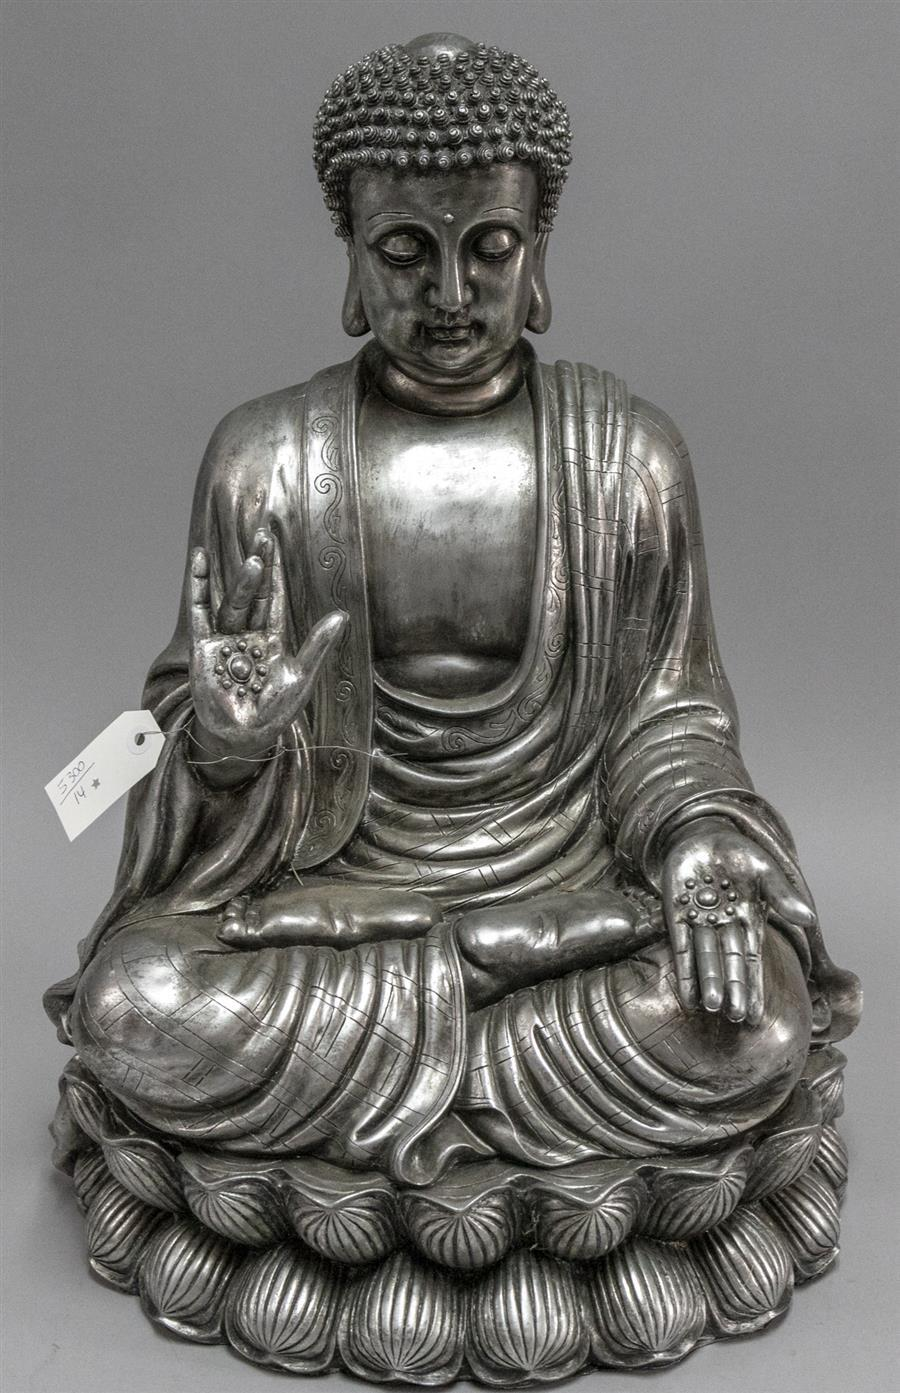 Composition silvered Buddha sculpture